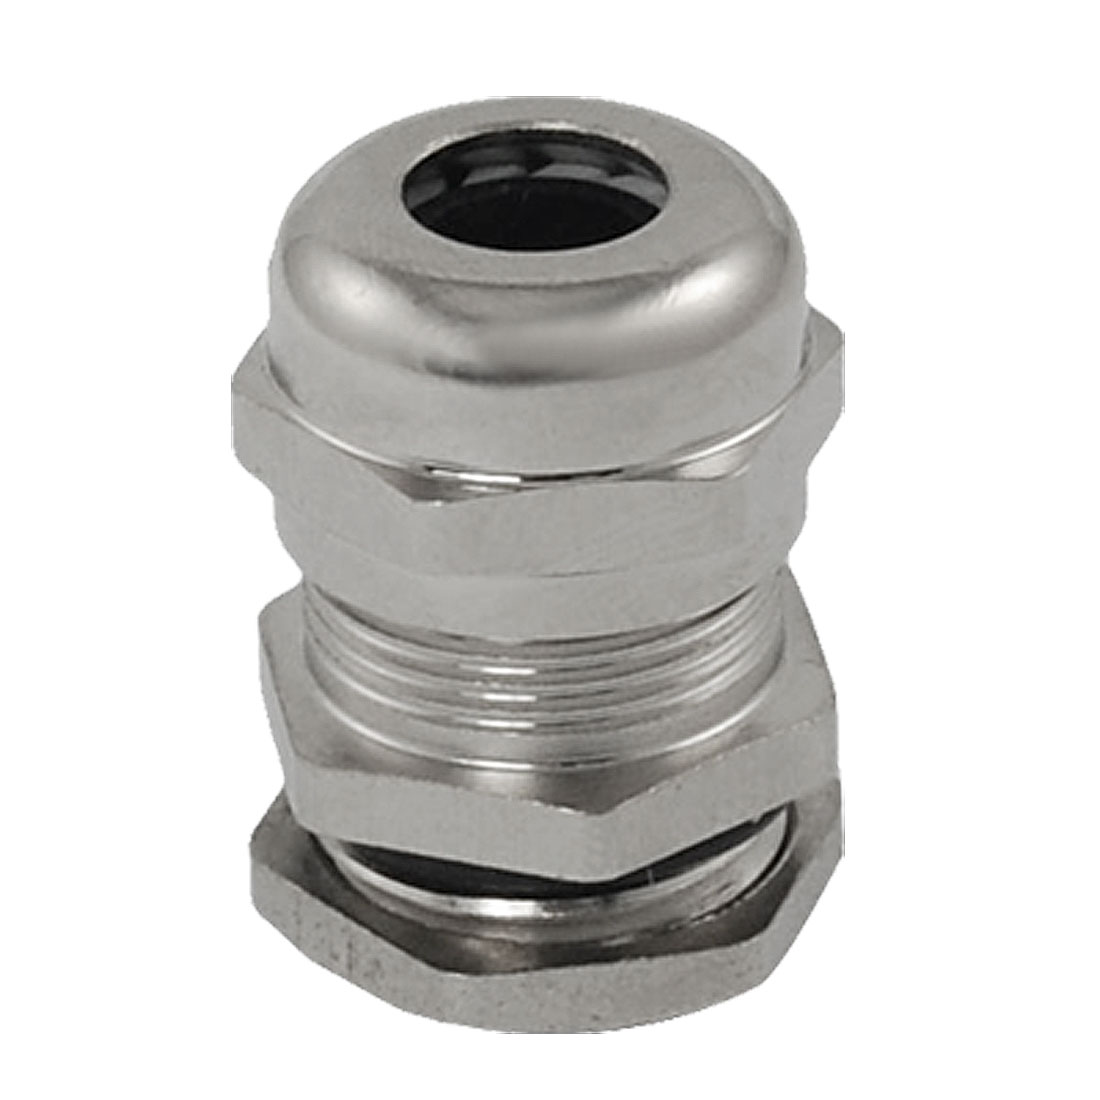 Silver Tone Stainless Steel 4.0-8.0mm M16 Cable Gland Connector